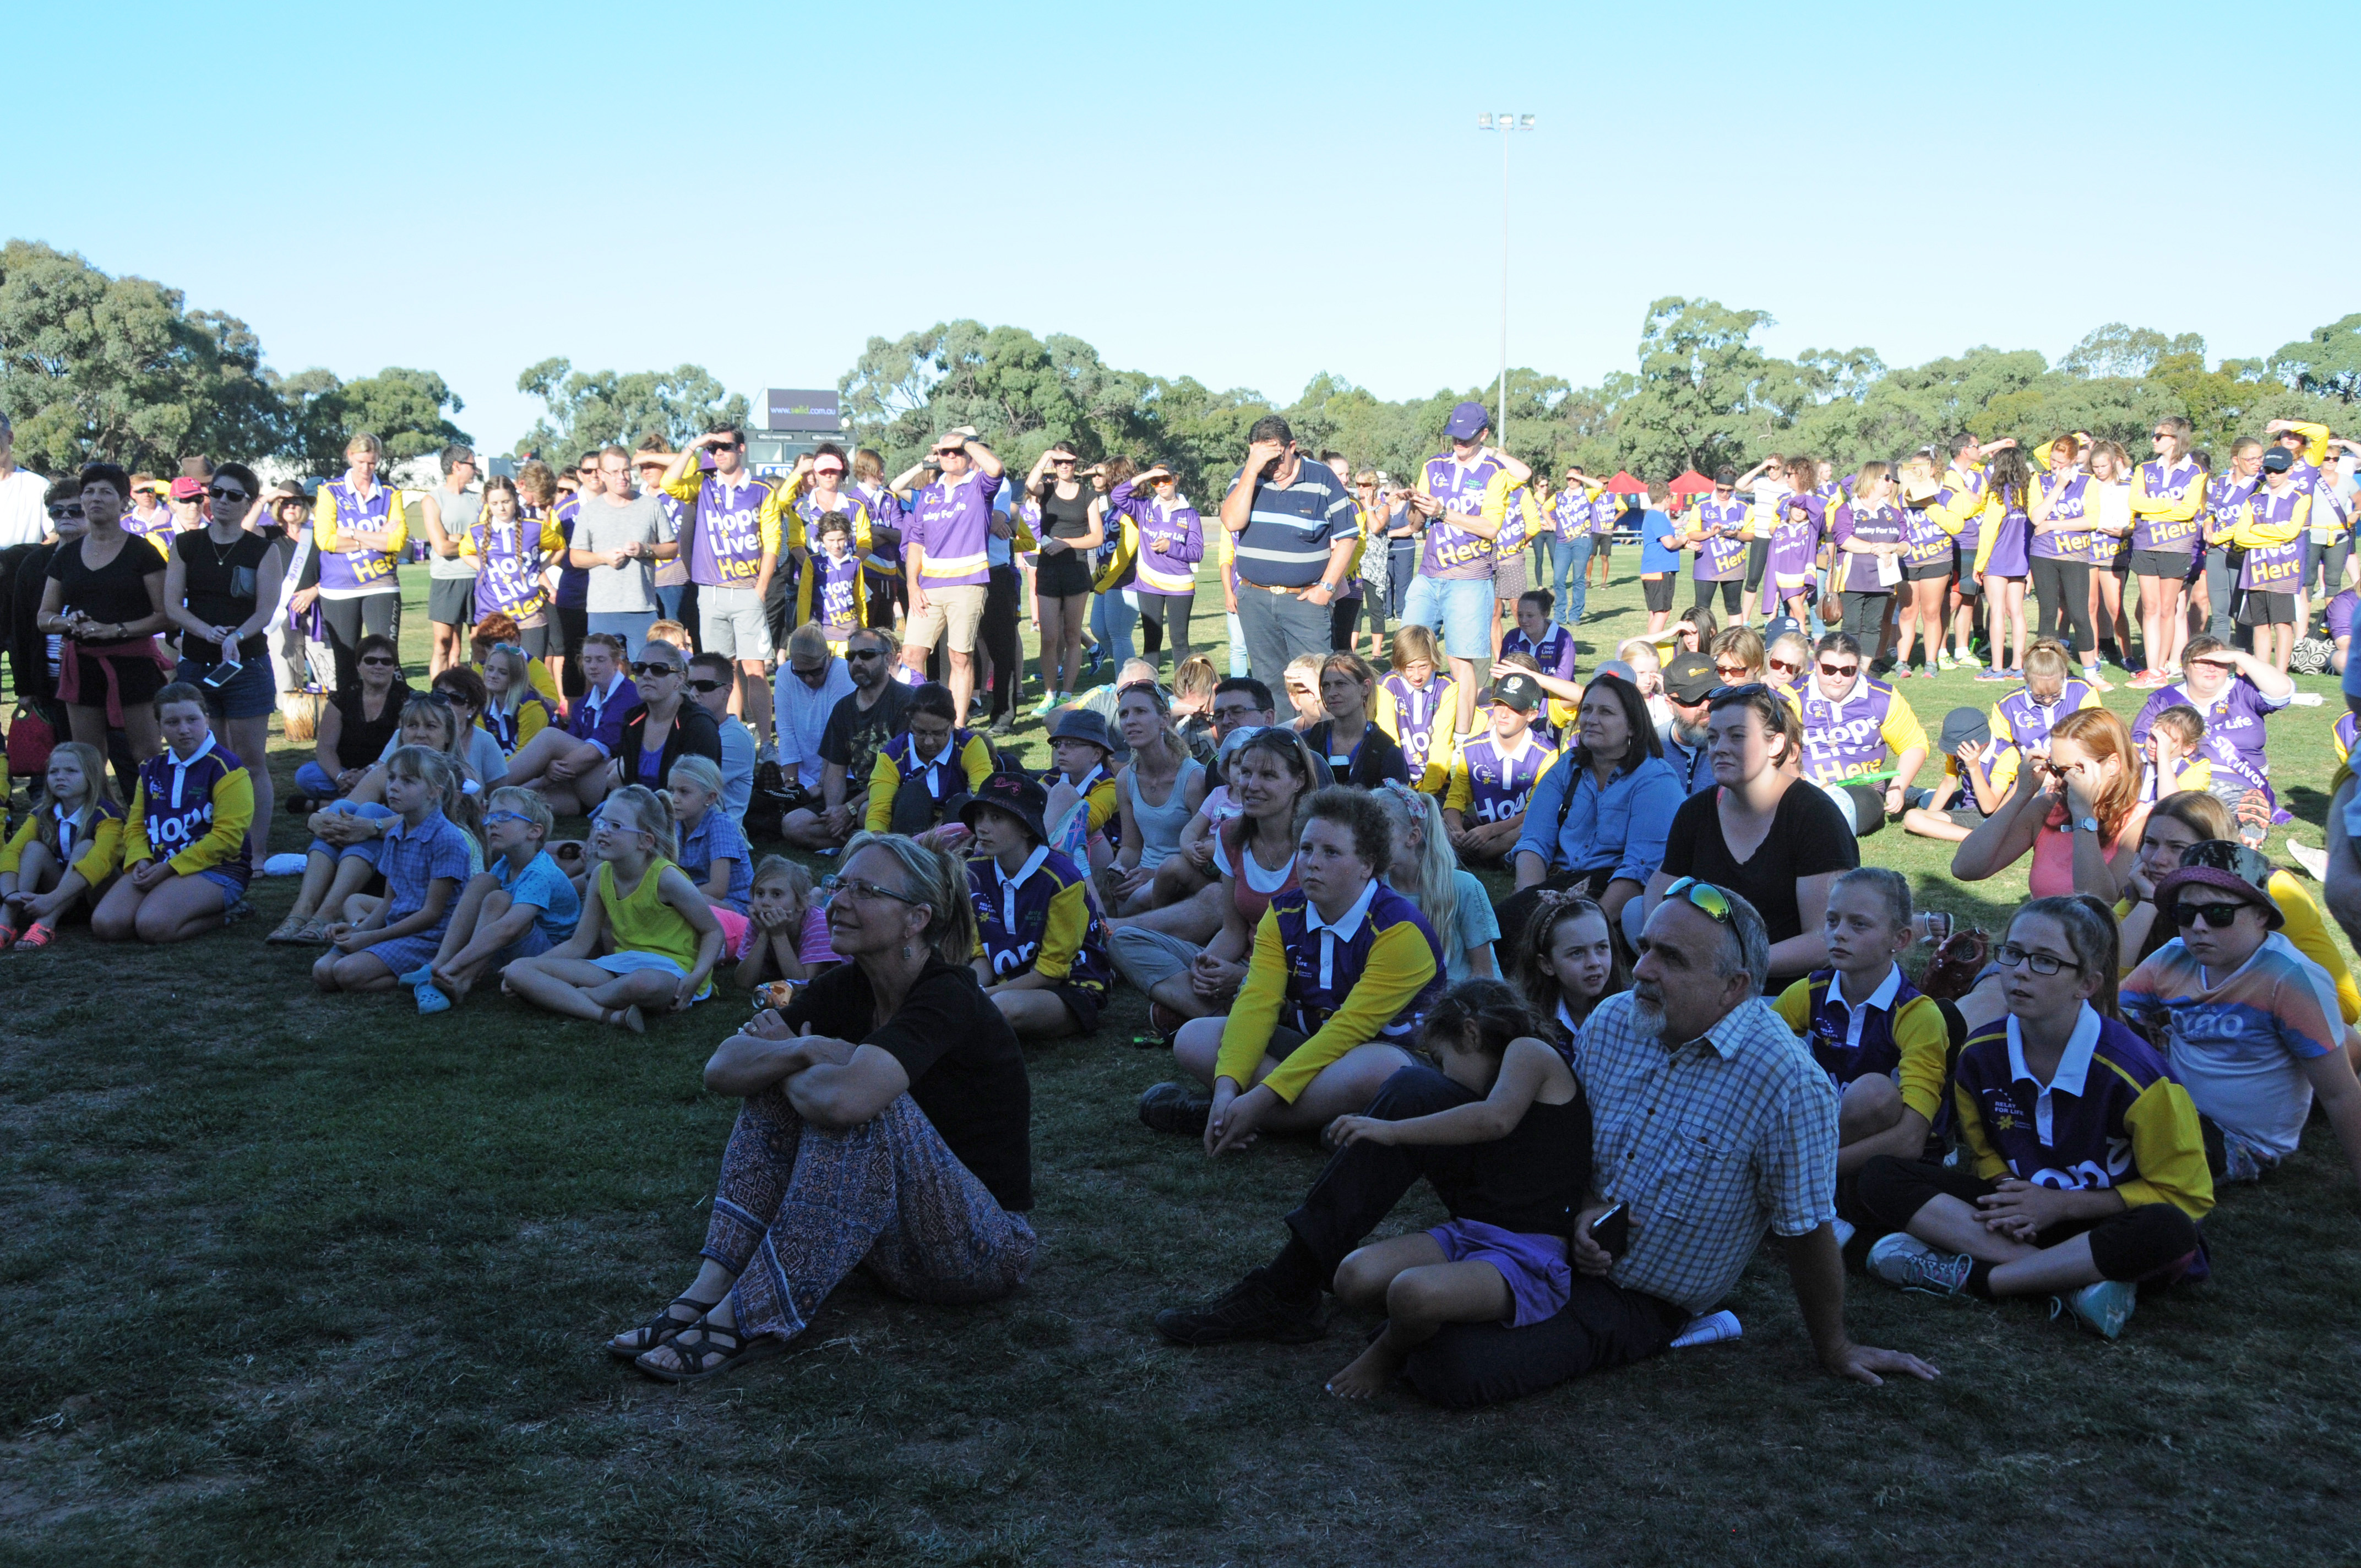 Image - Horsham and District Relay for Life, 170317. The crowd watches the opening proceedings.